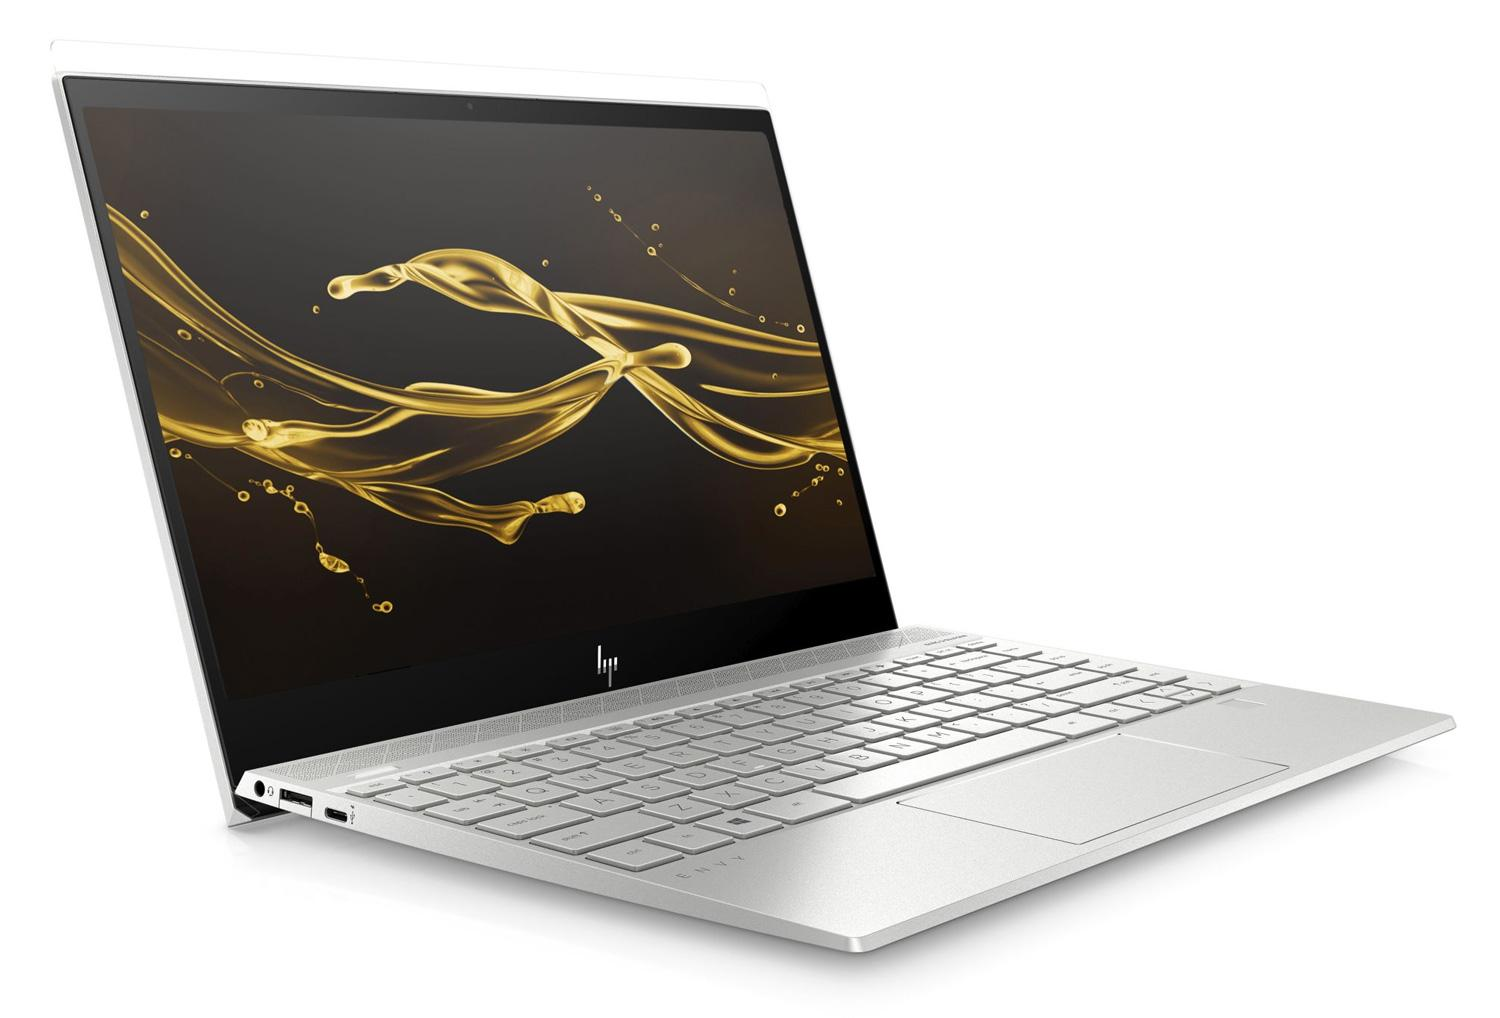 Ordinateur portable HP Envy 13-aq0002nf Argent - photo 1